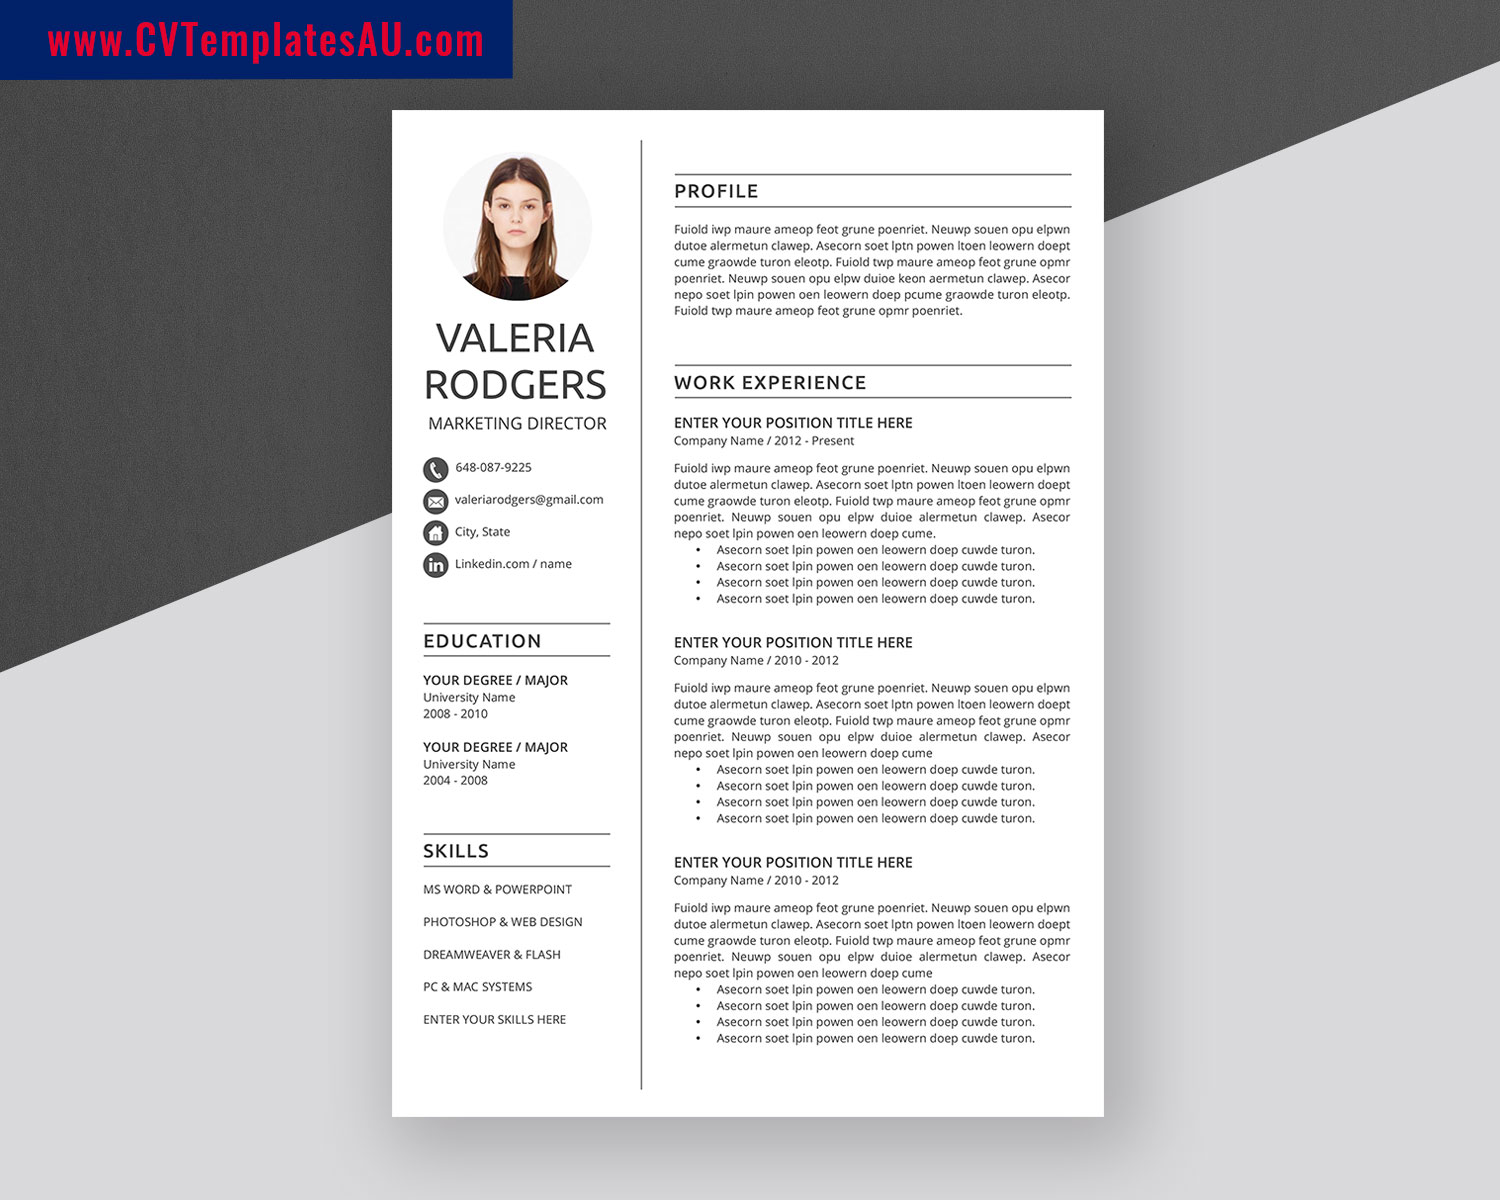 professional looking resumed and cover letter will catch hr's attention and give you a chance to get a job interview in a company of your dreams. Modern Cv Templates Bundle Professional And Simple Resume Templates Design Curriculum Vitae Ms Word Cv Format 1 3 Page Cv Templates For Job Application Cvtemplatesau Com